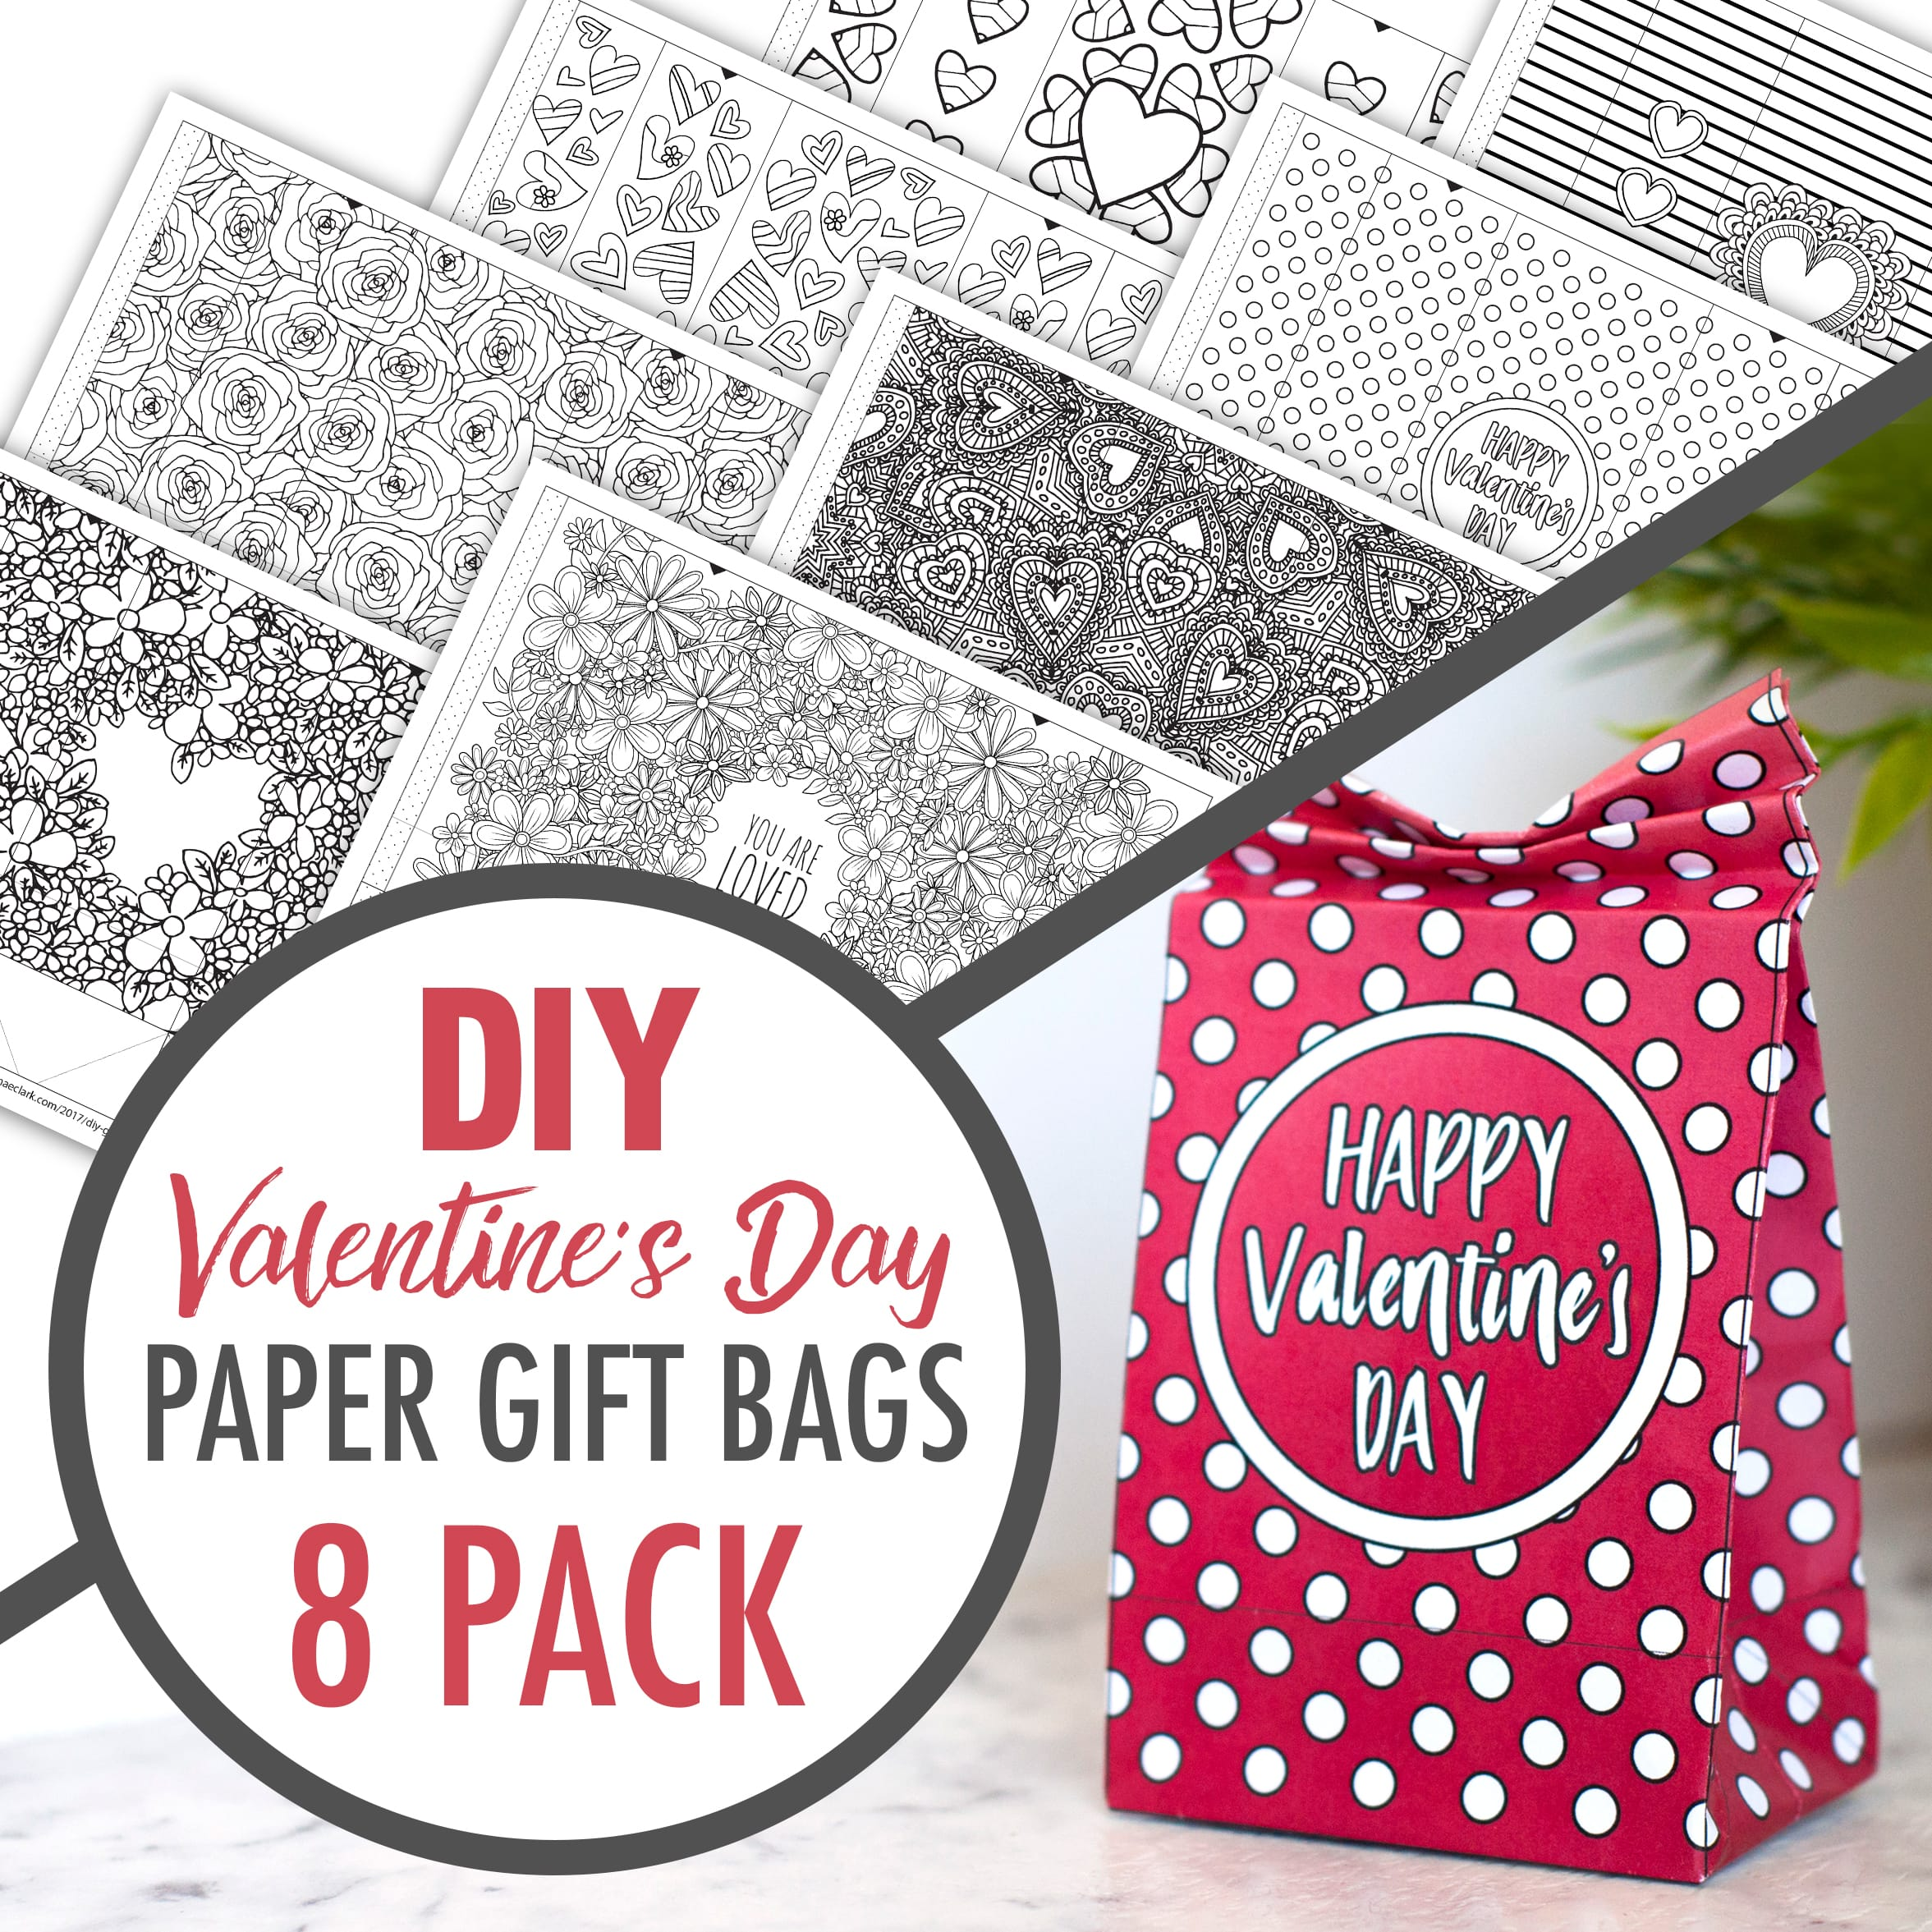 DIY Valentine's Day Paper Gift Bags | Learn how to make your own cute coloring page paper gift bags - what a great gift idea for Valentine's Day! Watch the video instructions and download your free sample at www.sarahrenaeclark.com| Valentine's Day Craft, DIY Valentine's Day, DIY paper gift bag, DIY gift bag, Valentine's Day activity, DIY craft, free craft template, DIY gift bag tutorial, video tutorial, printable template